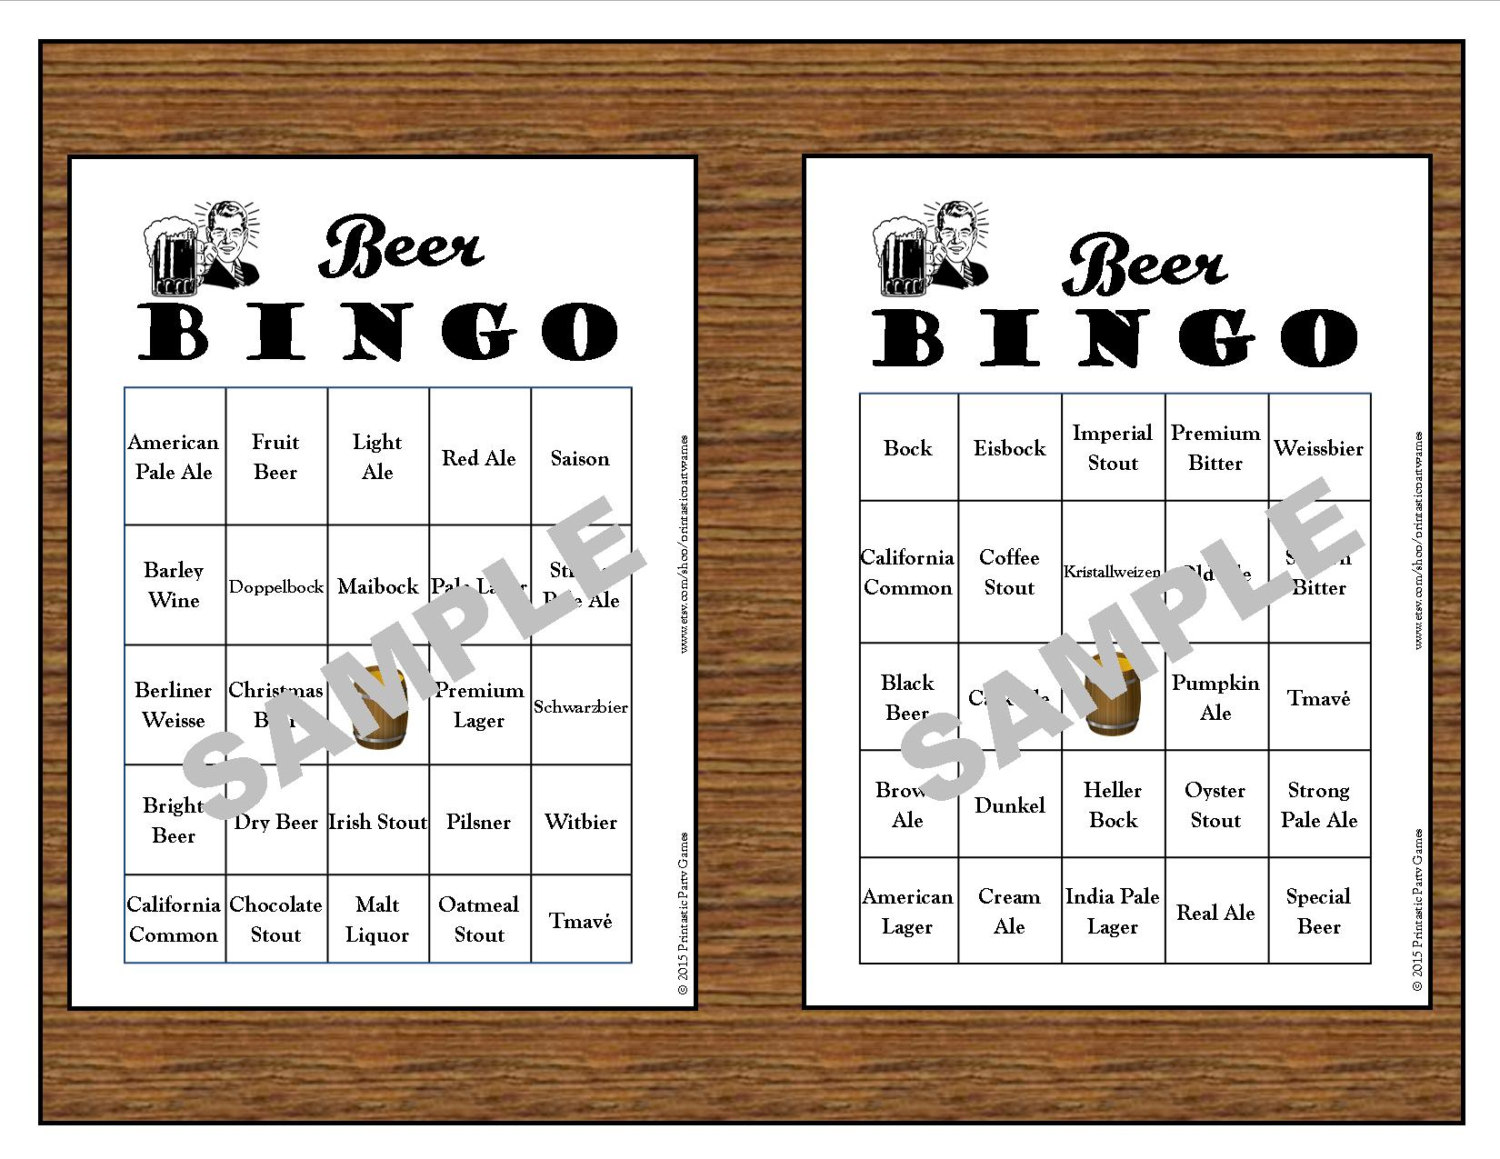 30 printable beer bingo cardsinstant downloaduse for zoom monicamarmolfo Choice Image